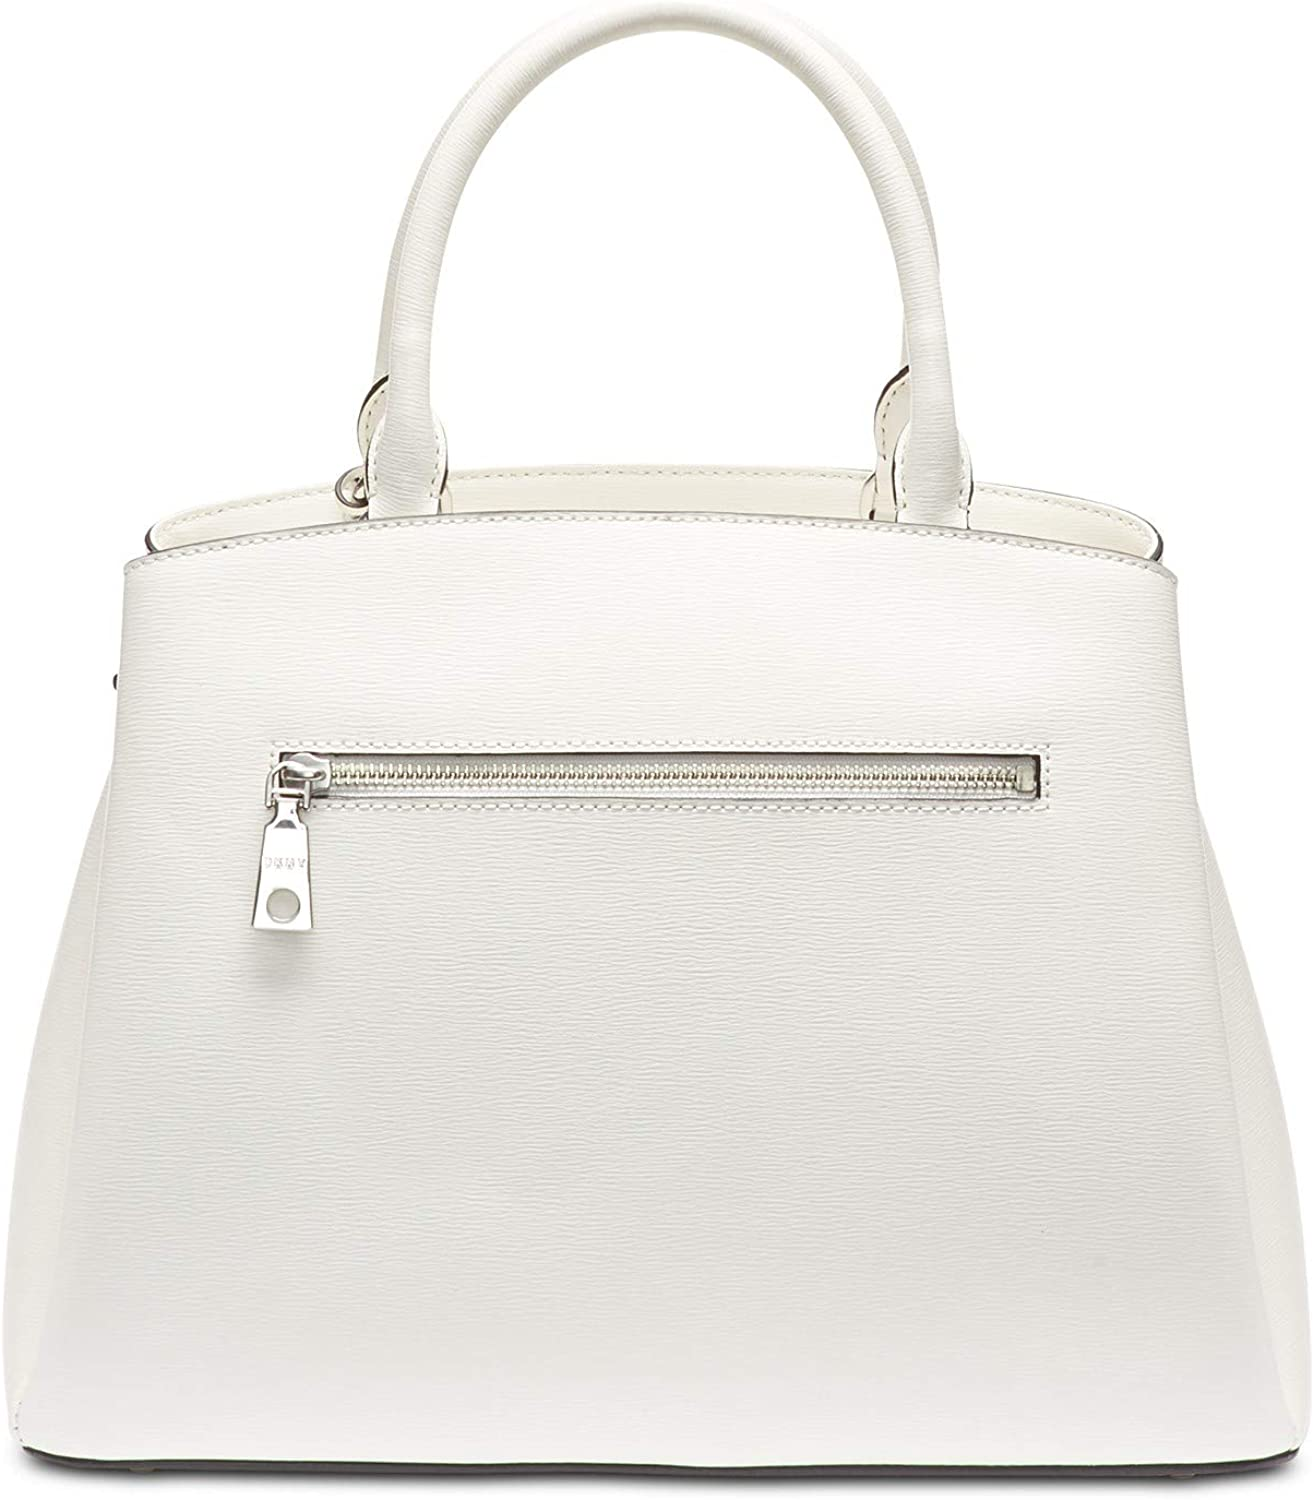 White DKNY Paige Leather Large Satchel